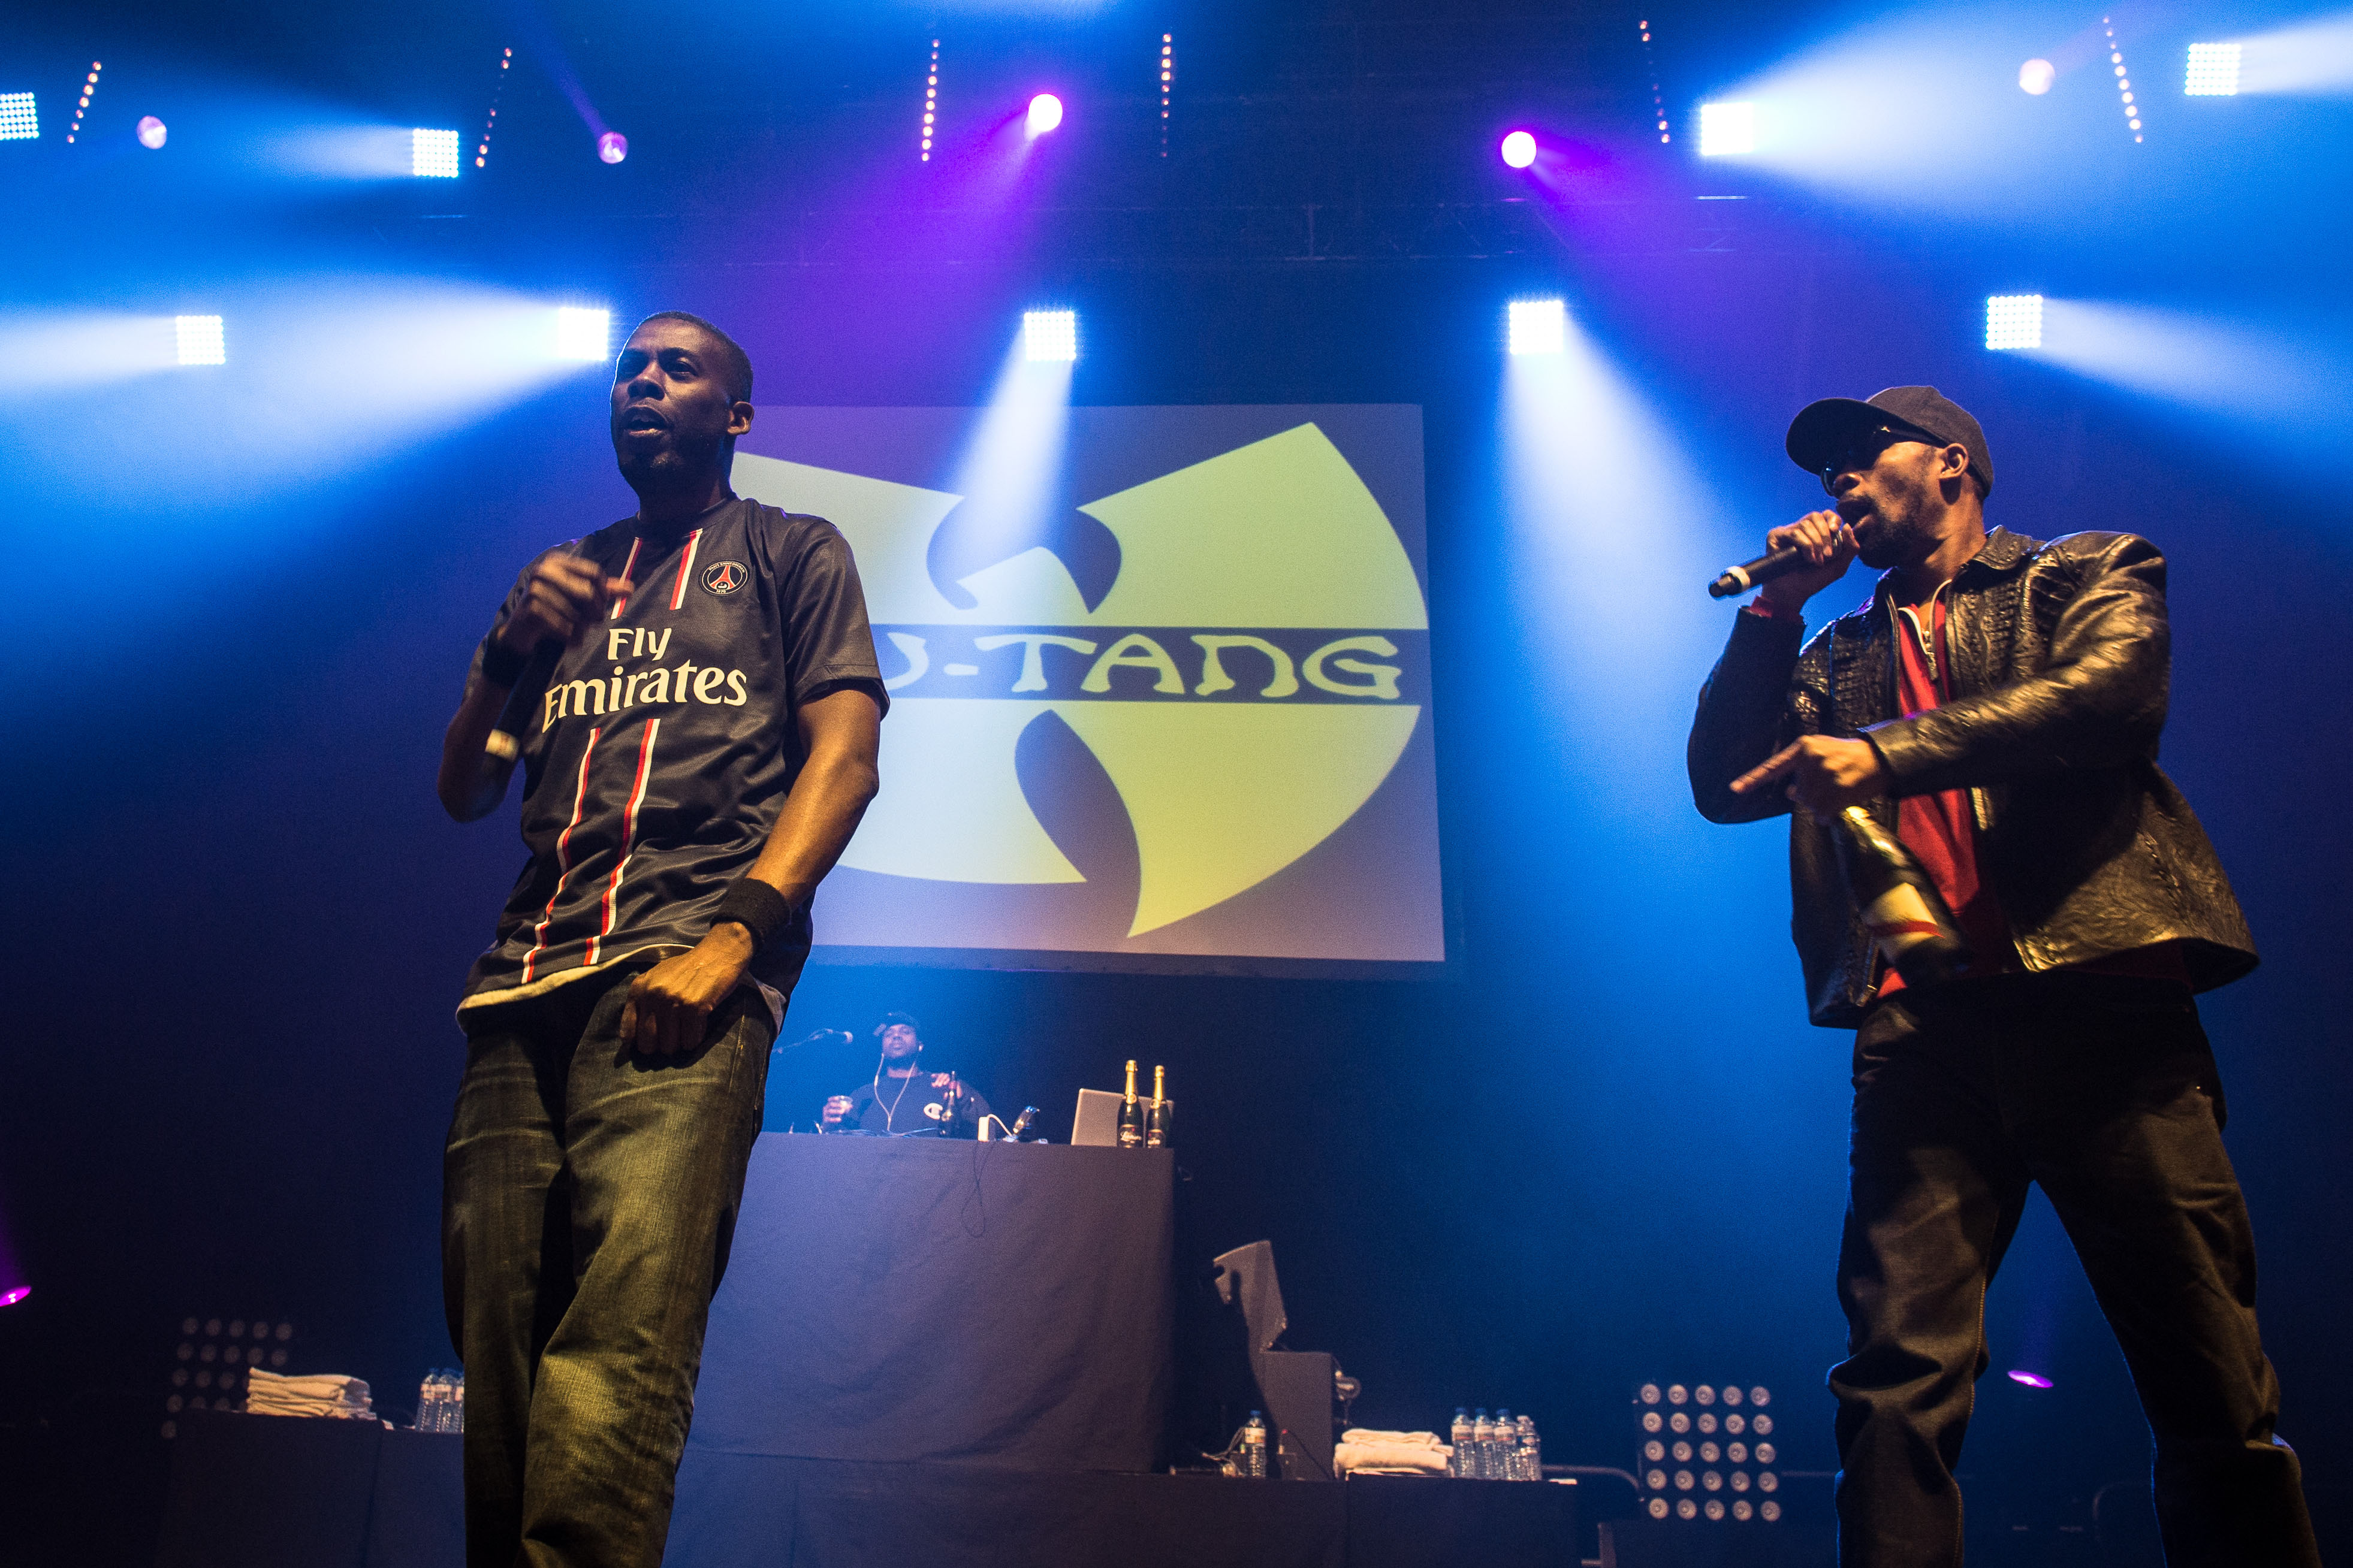 GZA and RZA of Wu-Tang Clan in 2013.